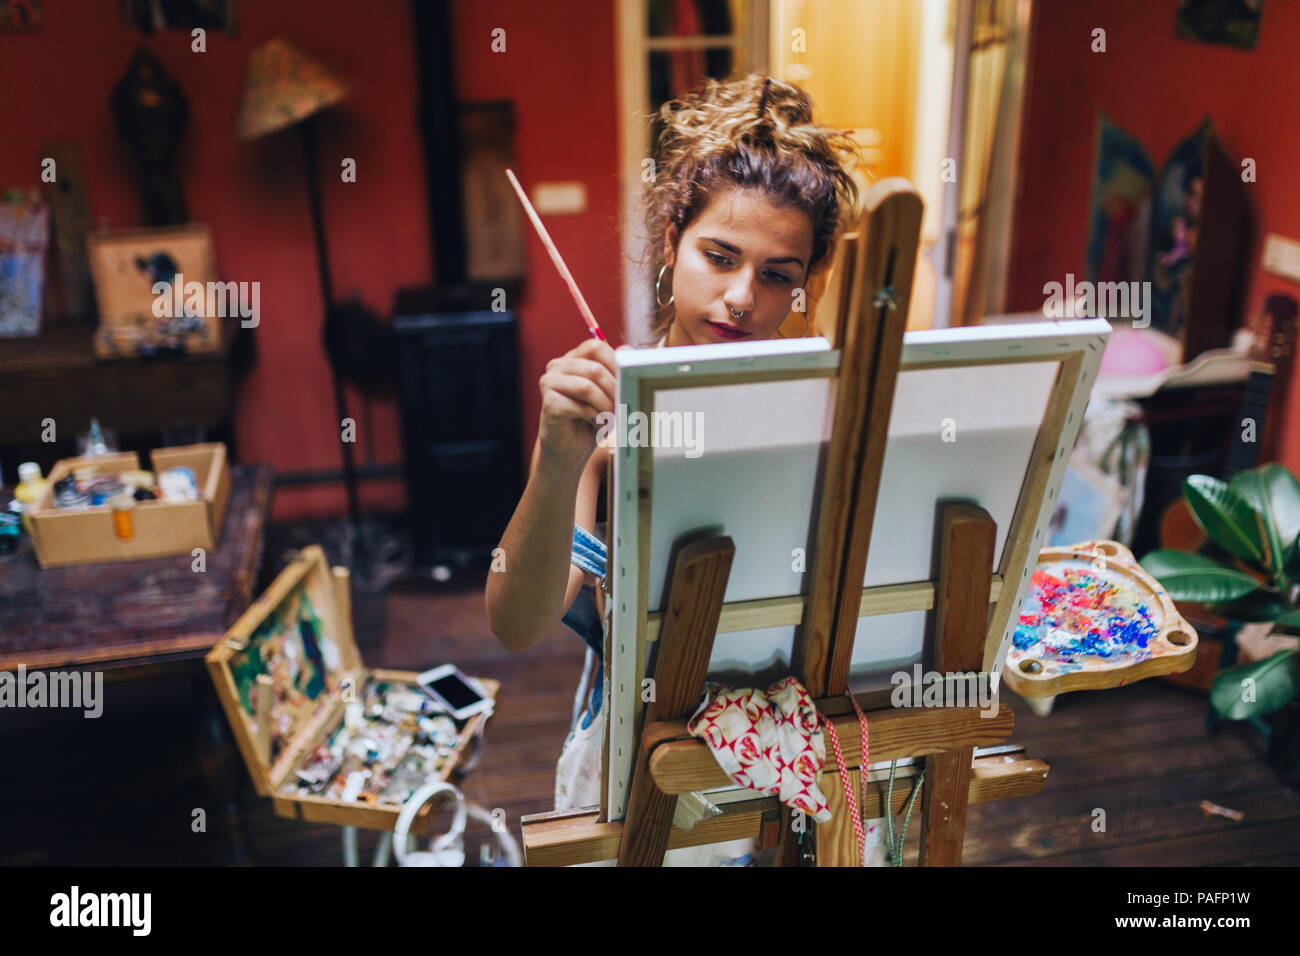 Indoor shot of professional female artist painting on canvas in studio with plants. - Stock Image